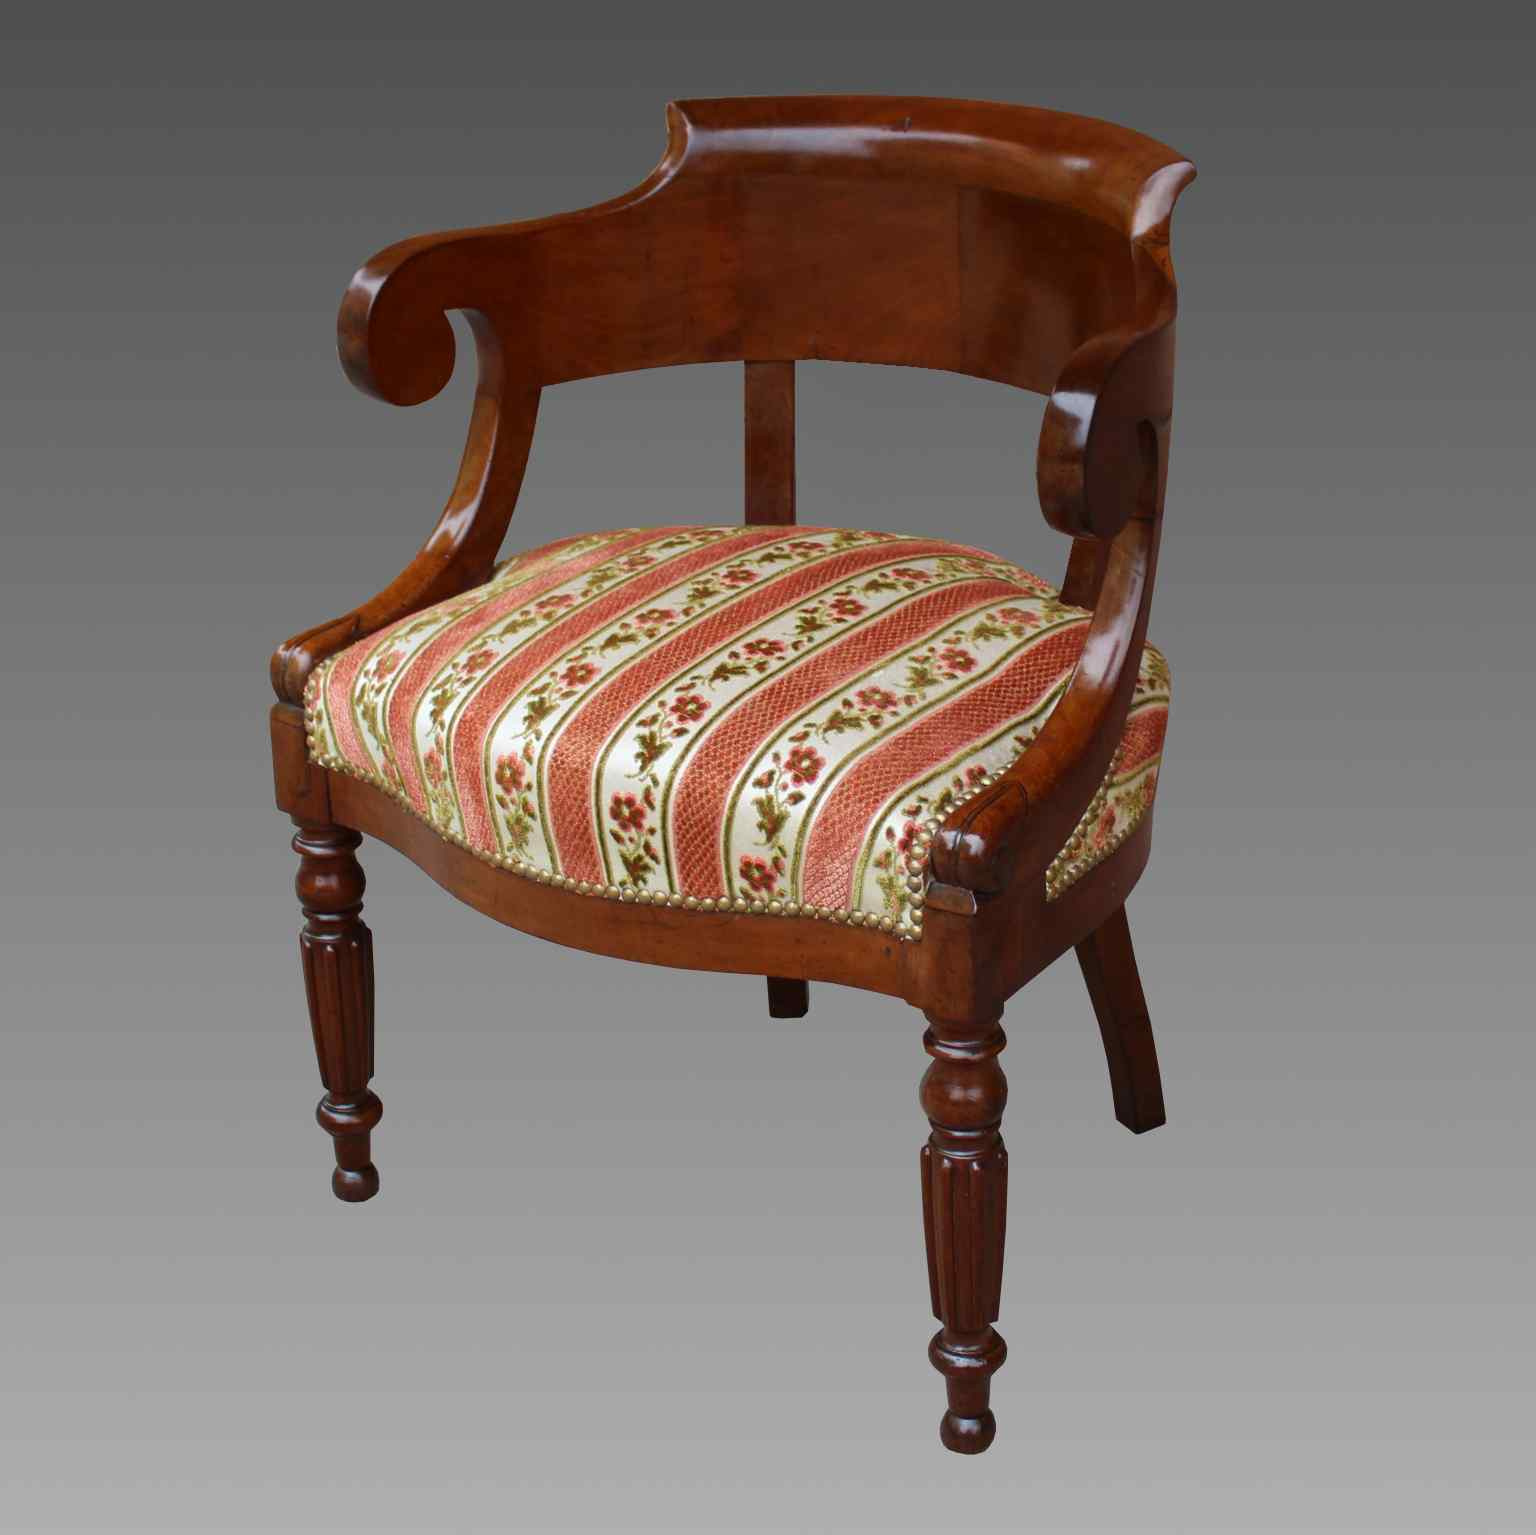 Antique Charles X Armchair in mahogany - 19th century